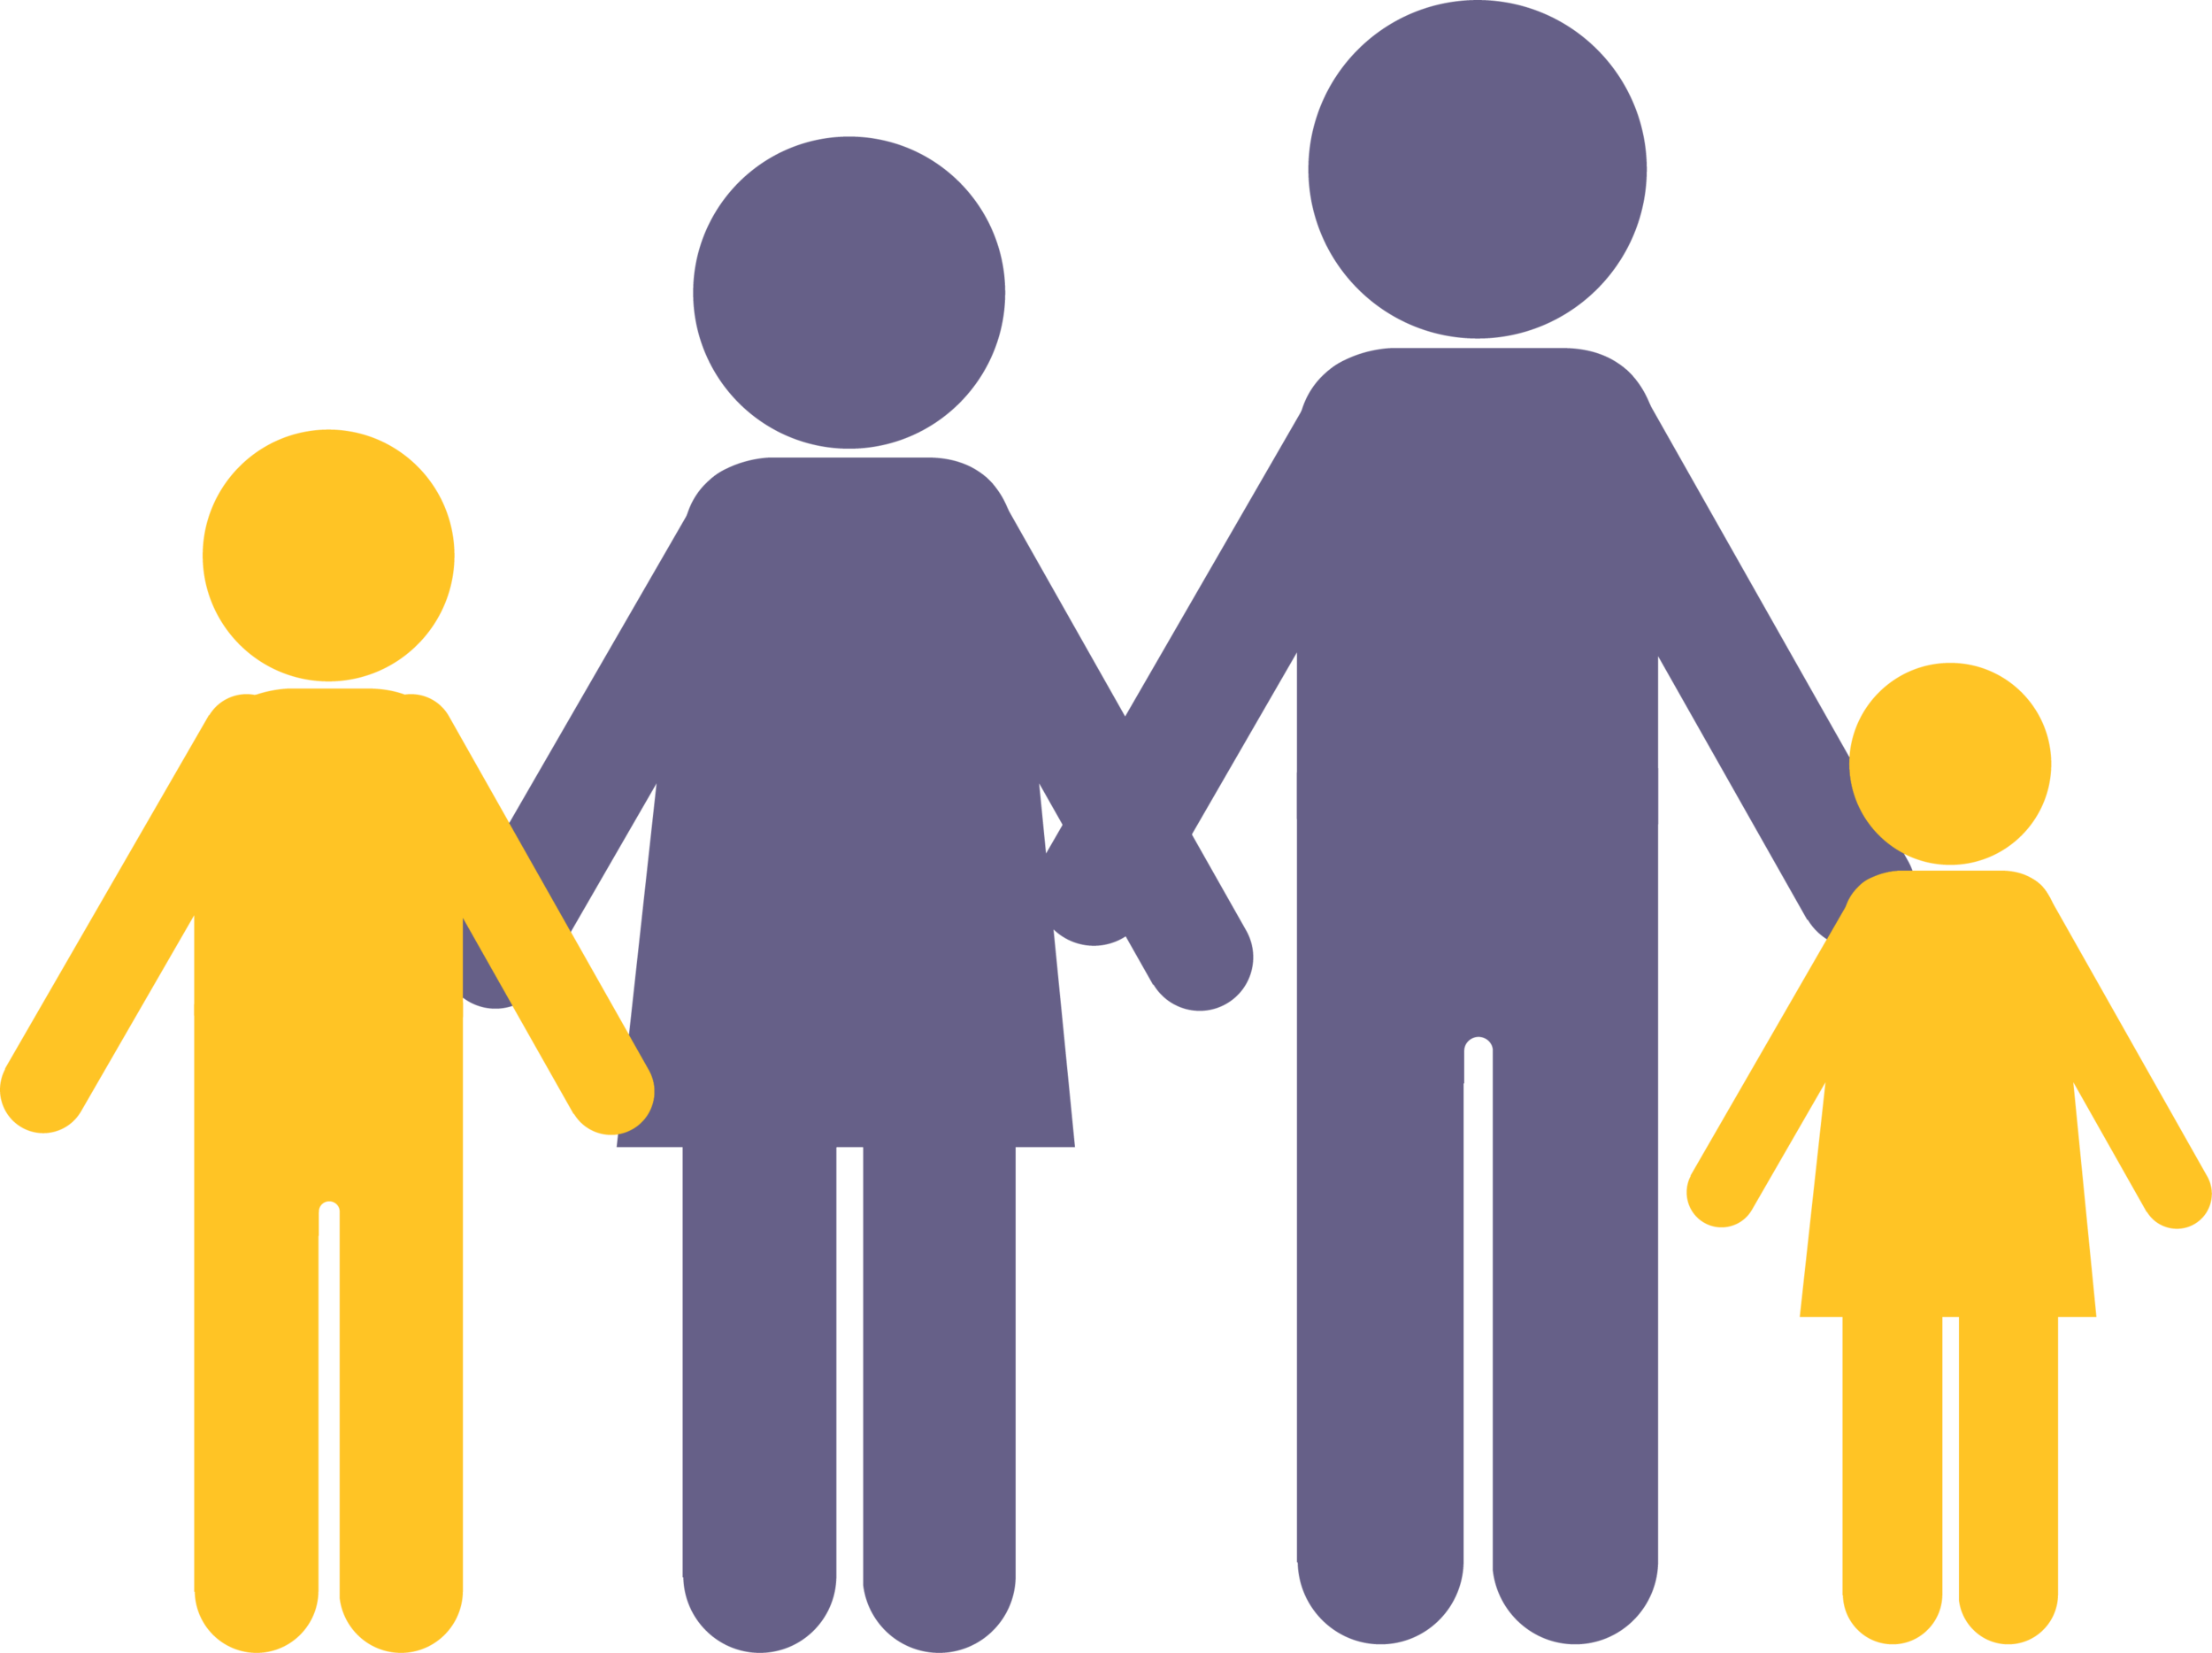 FAMILY SUPPORT   We give you the tools to raise healthy, happy children. We help your family build on their strengths, find support networks, and promote overall well-being.